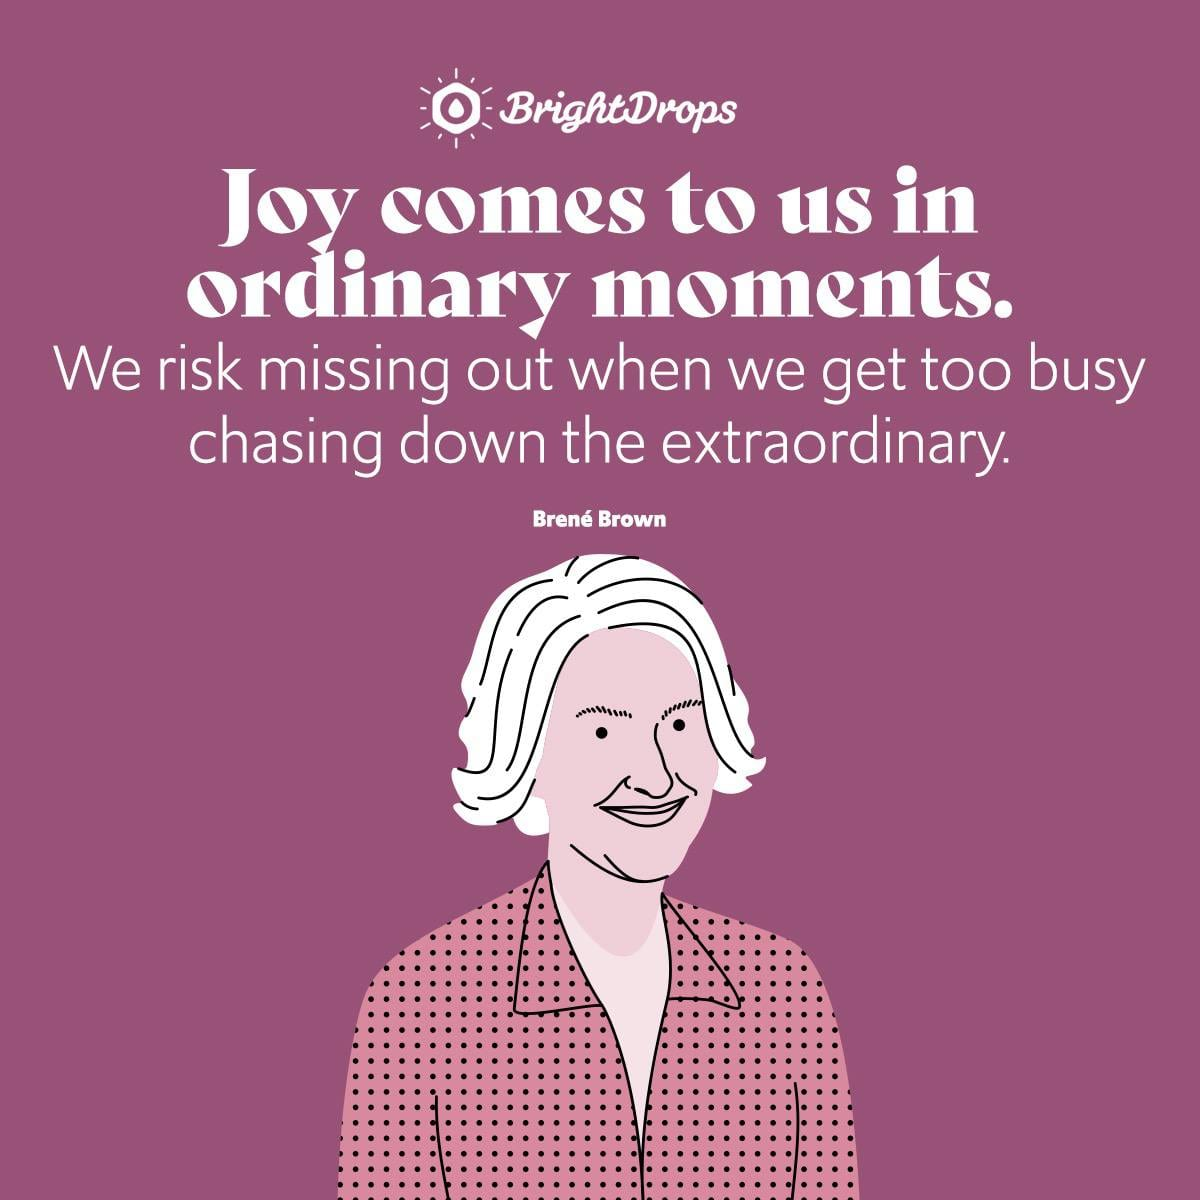 Joy comes to us in ordinary moments. We risk missing out when we get too busy chasing down the extraordinary. - Brene Brown